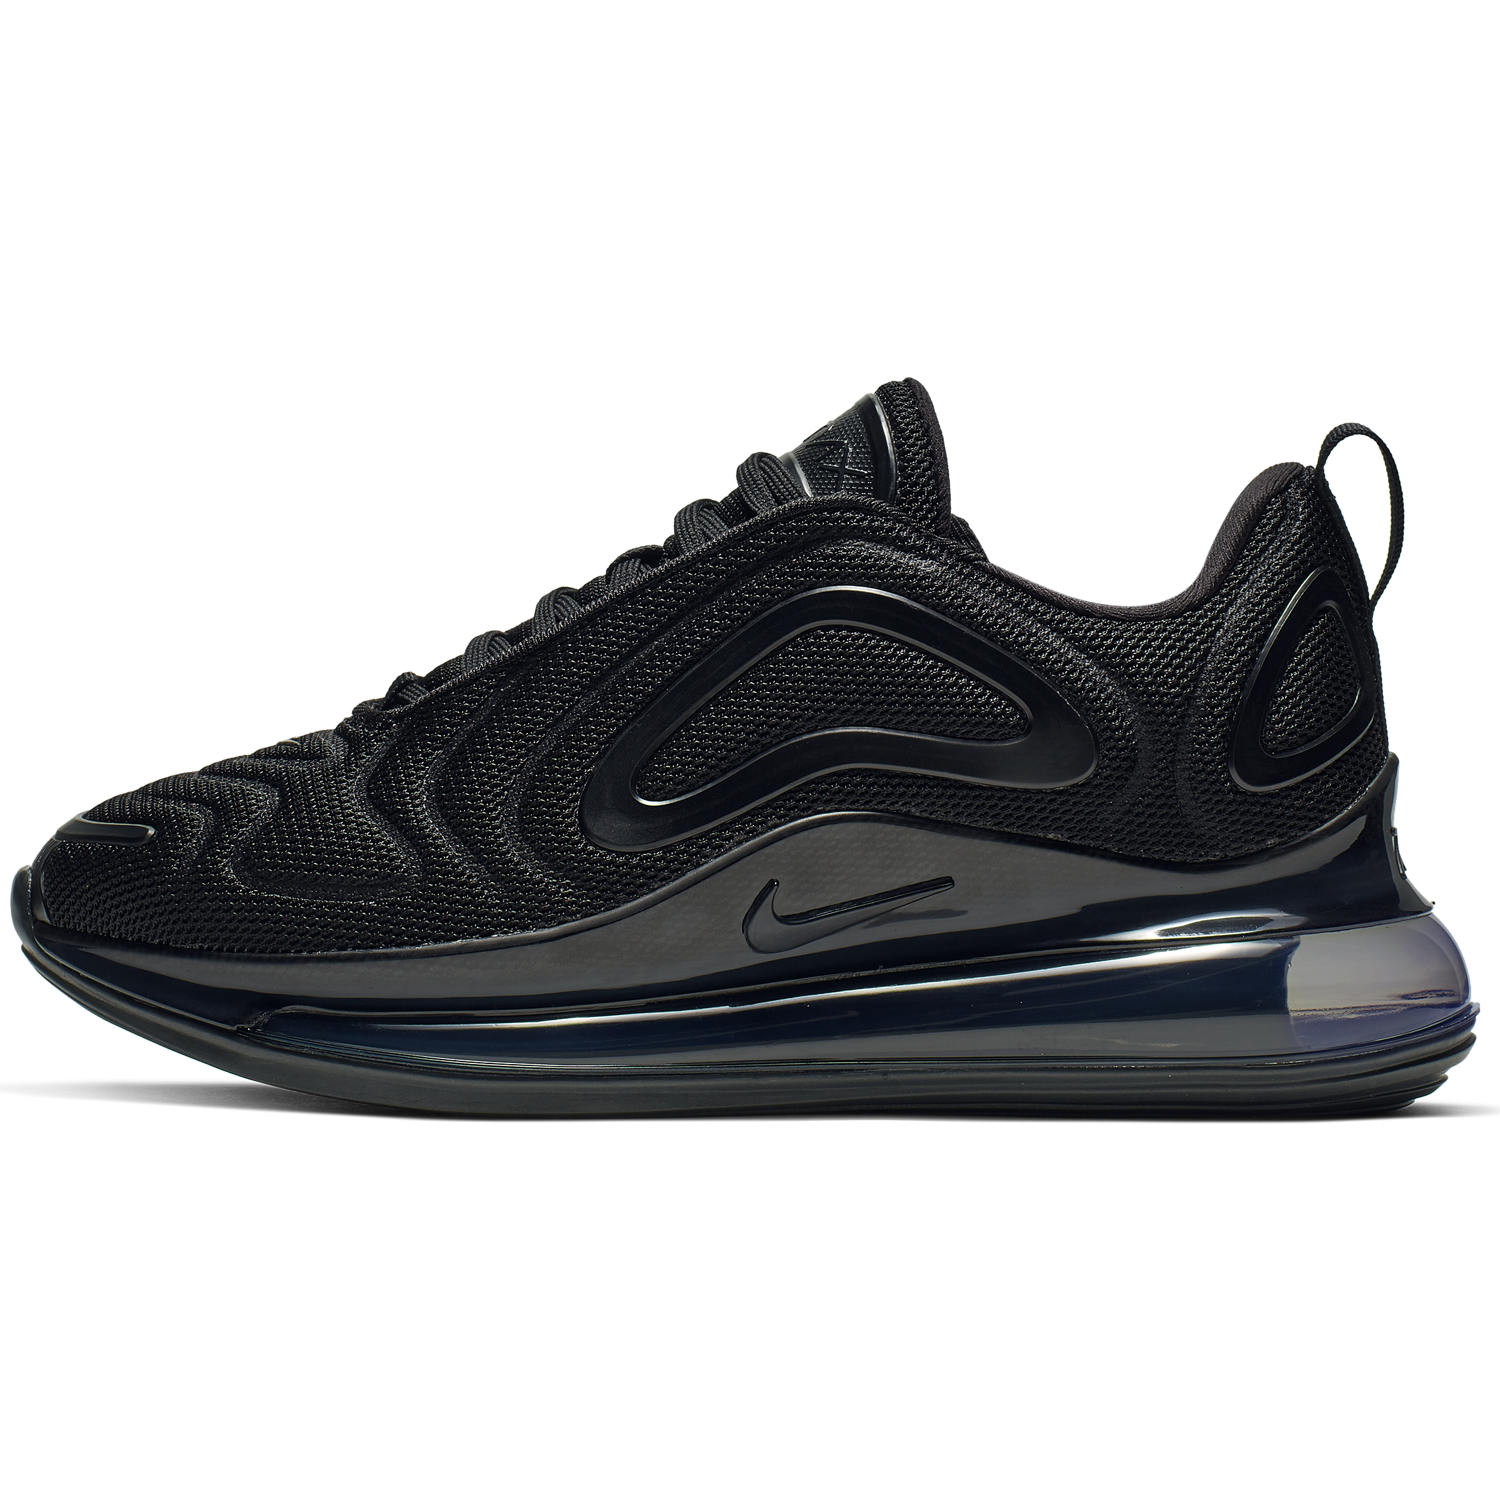 BUTY JUNIOR NIKE AIR MAX 720 CZARNE AQ3196-006 (GS)